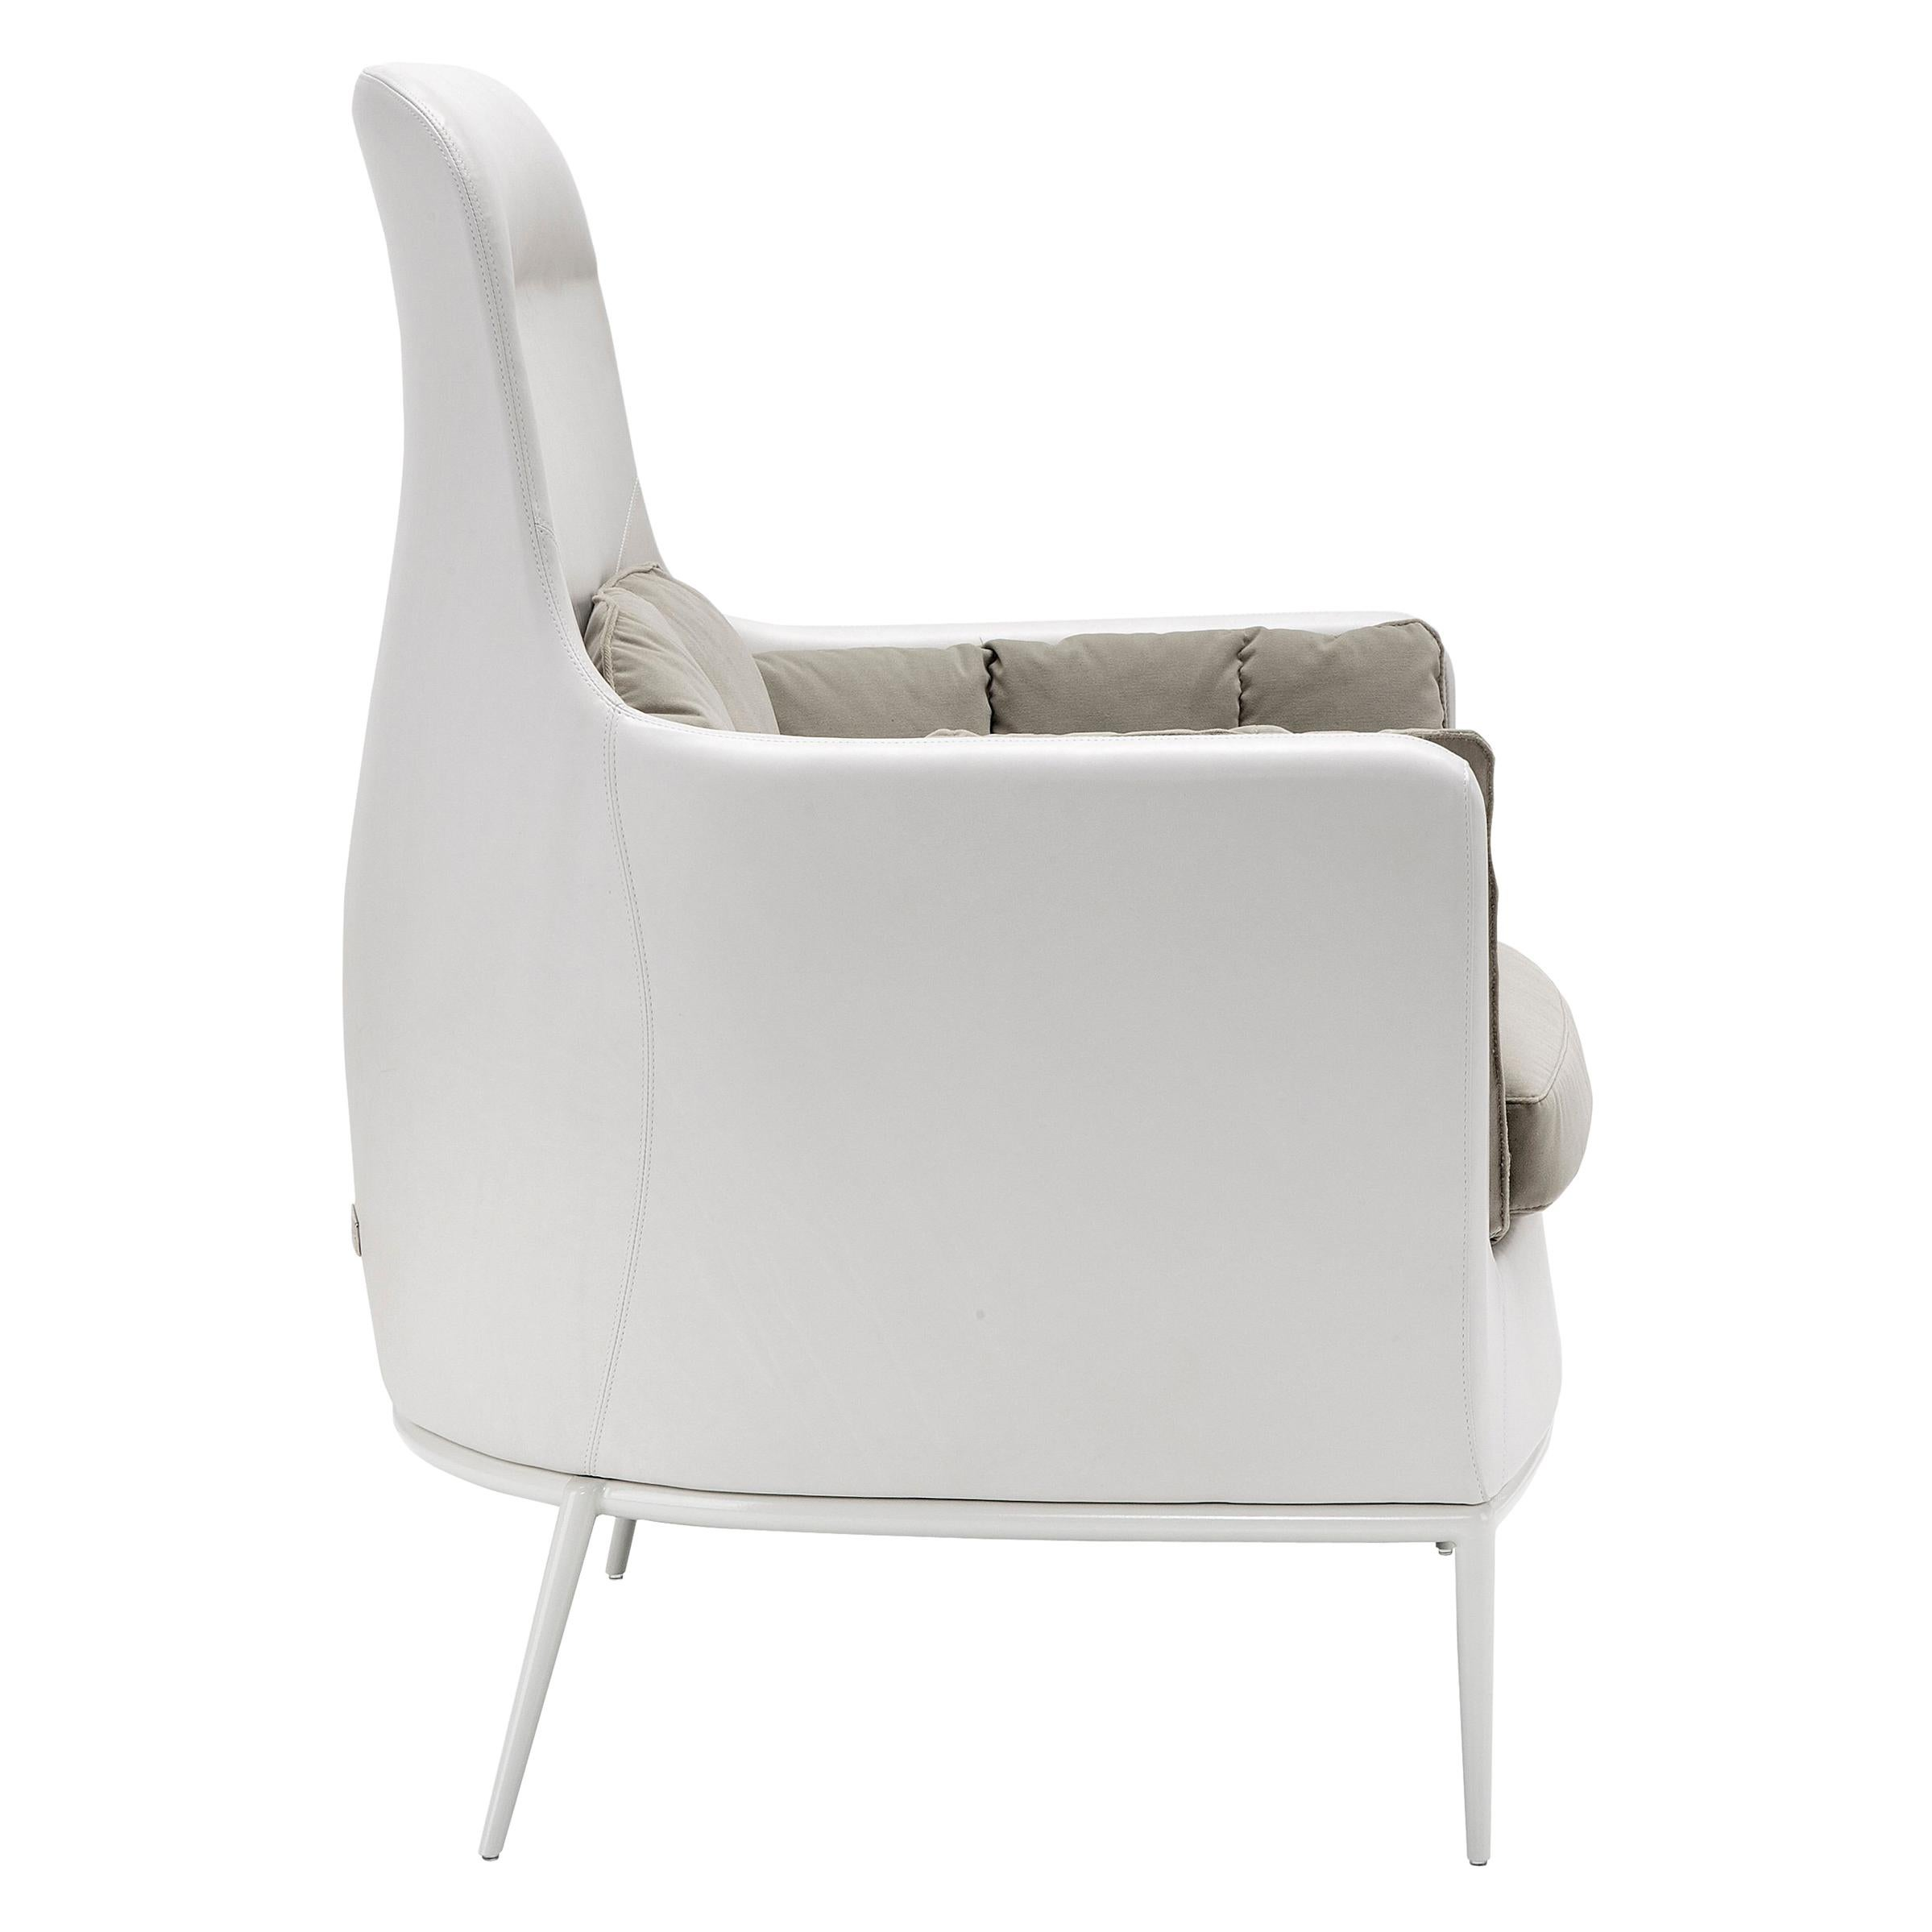 Amura 'Tulip' Armchair in Gray and Ivory by Luca Scacchetti